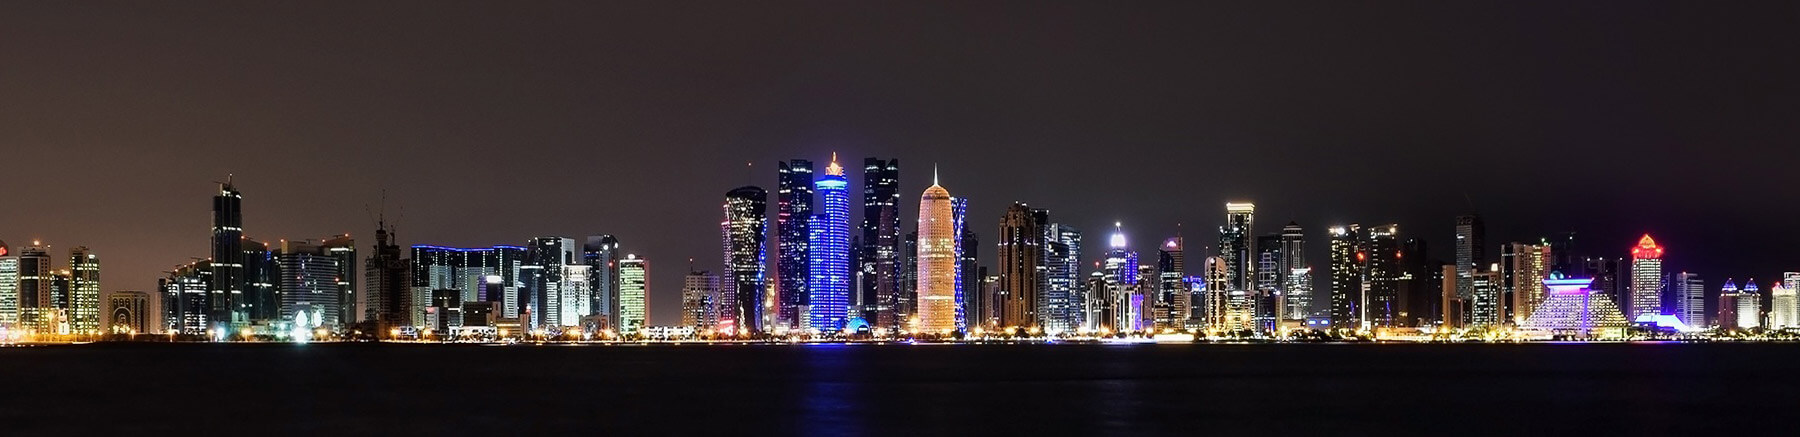 Panoramic view of Doha' skyline in Qatar by night